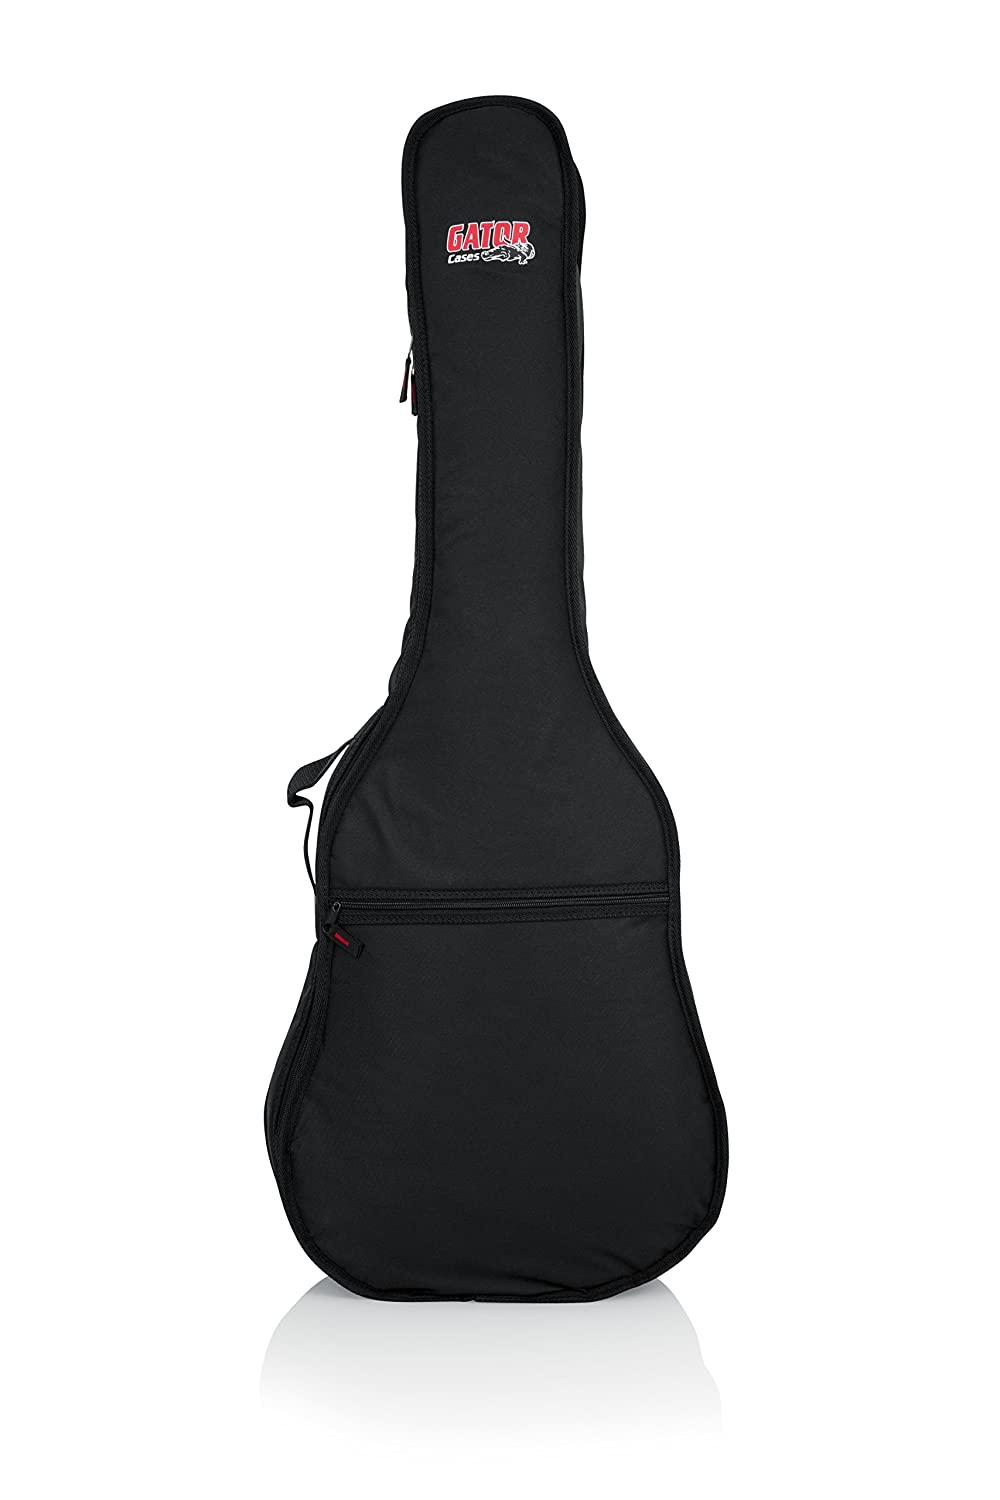 Gator GBE-DREAD Acoustic Guitar Bag